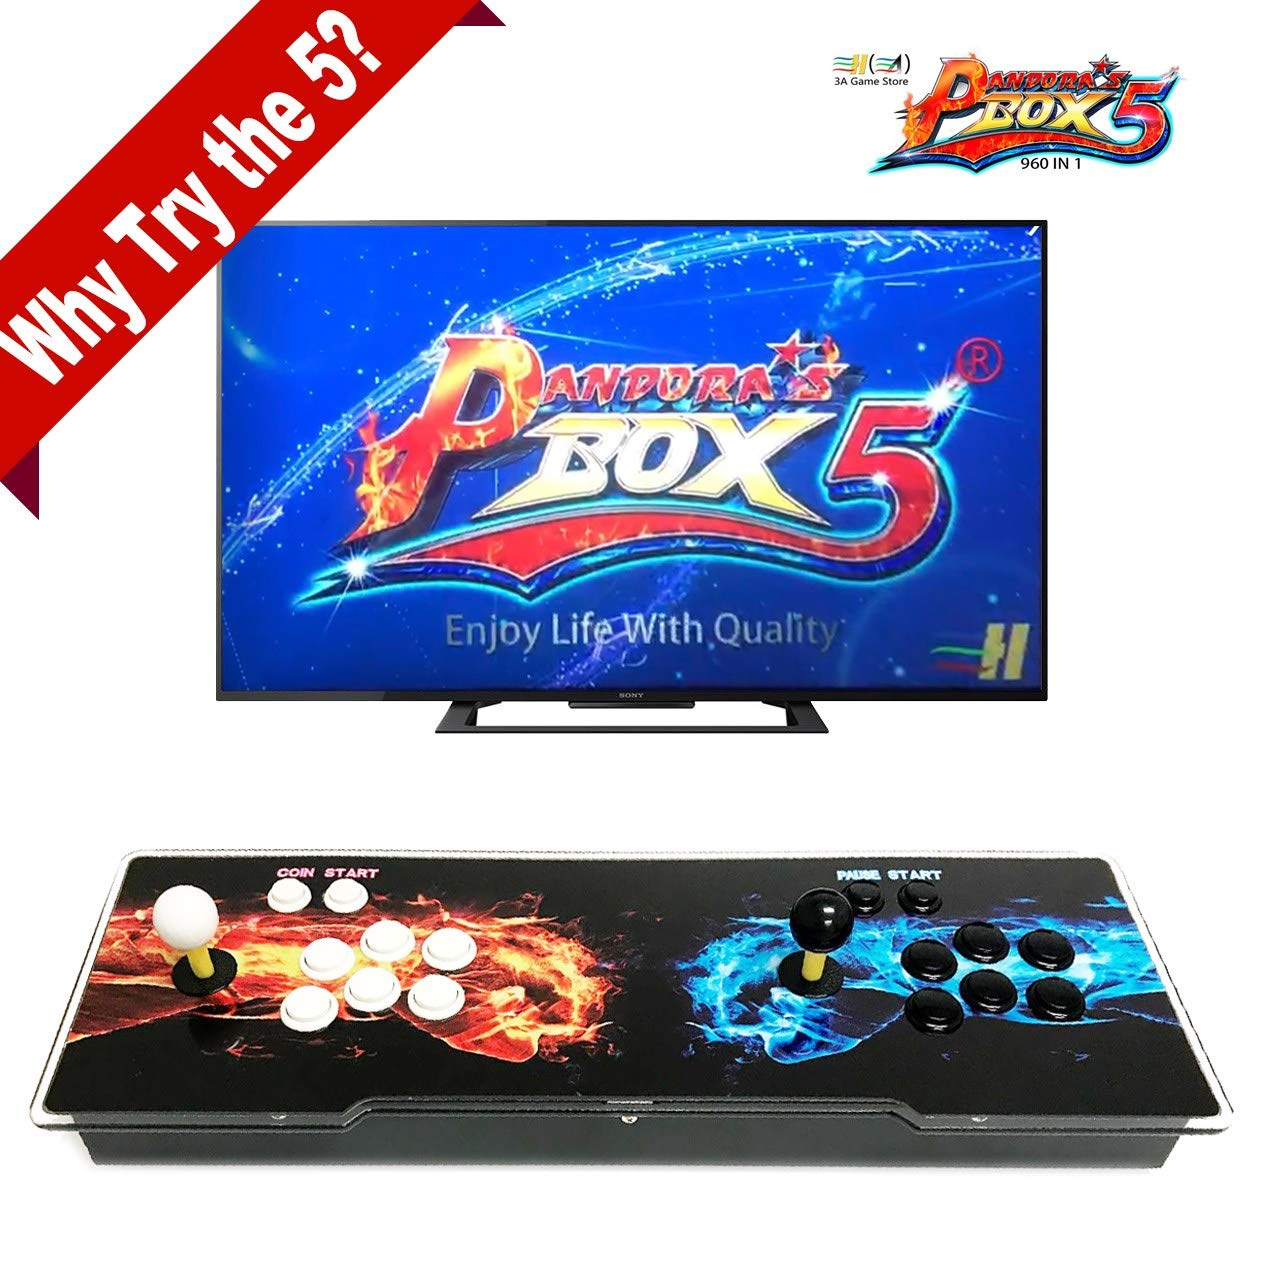 Pandora's Box 5 Support PS3 PC TV 2 Players 1280x720 Full HD